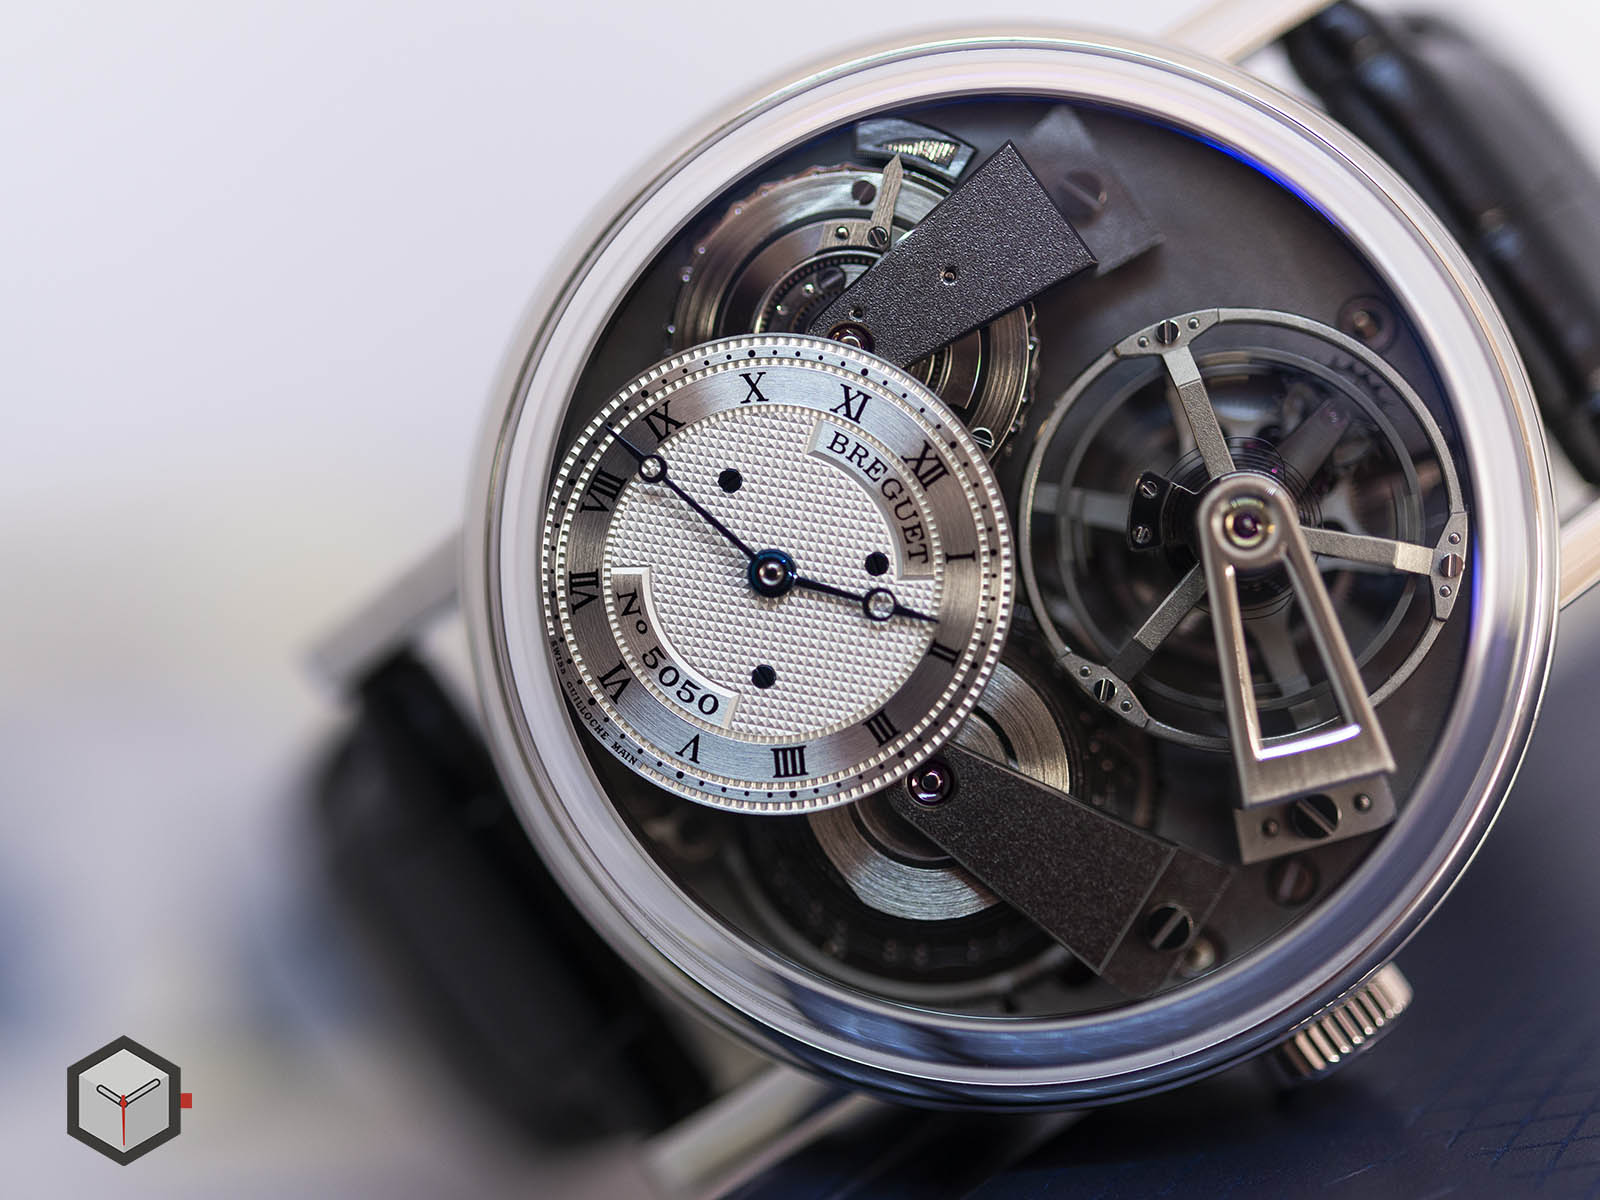 7047pt-11-9zu-breguet-tradition-fusee-tourbillon-5.jpg